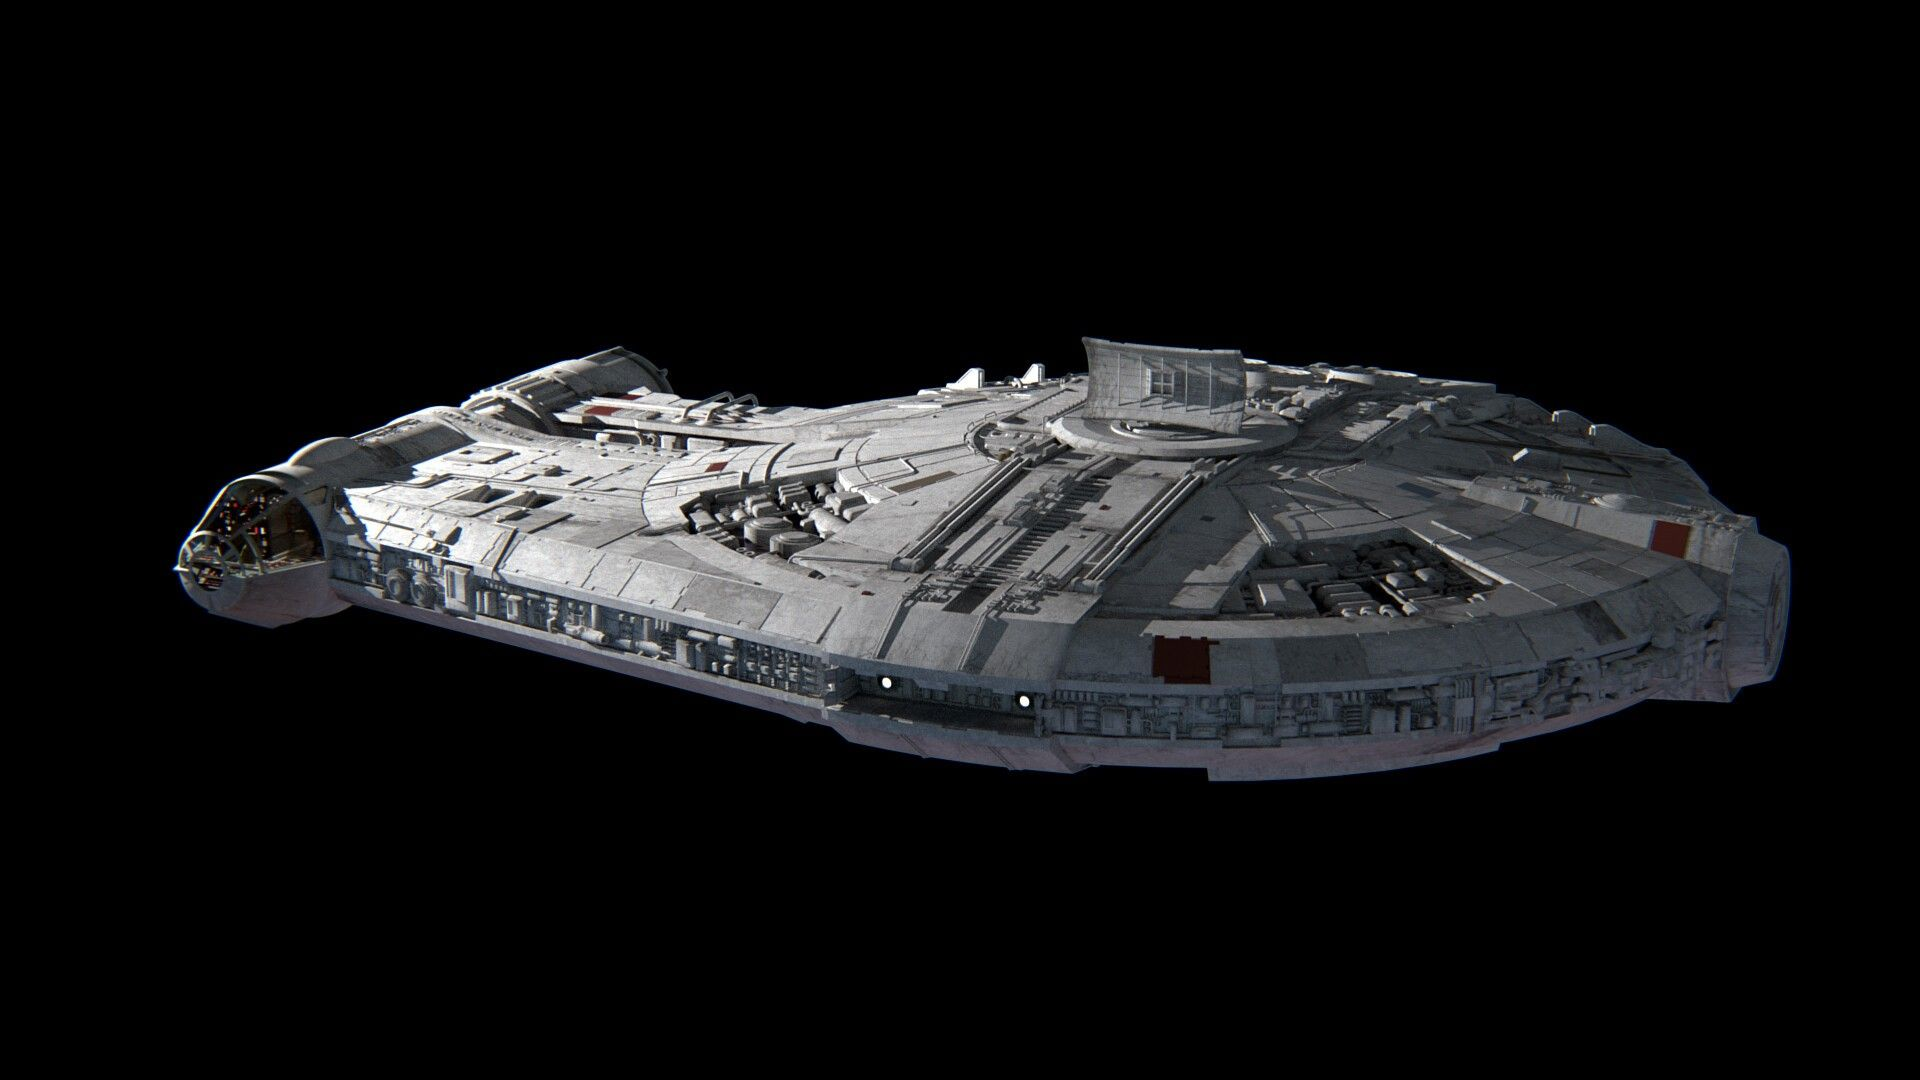 Yt 2400 Star Wars Characters Pictures Star Wars Vehicles Star Wars Ships